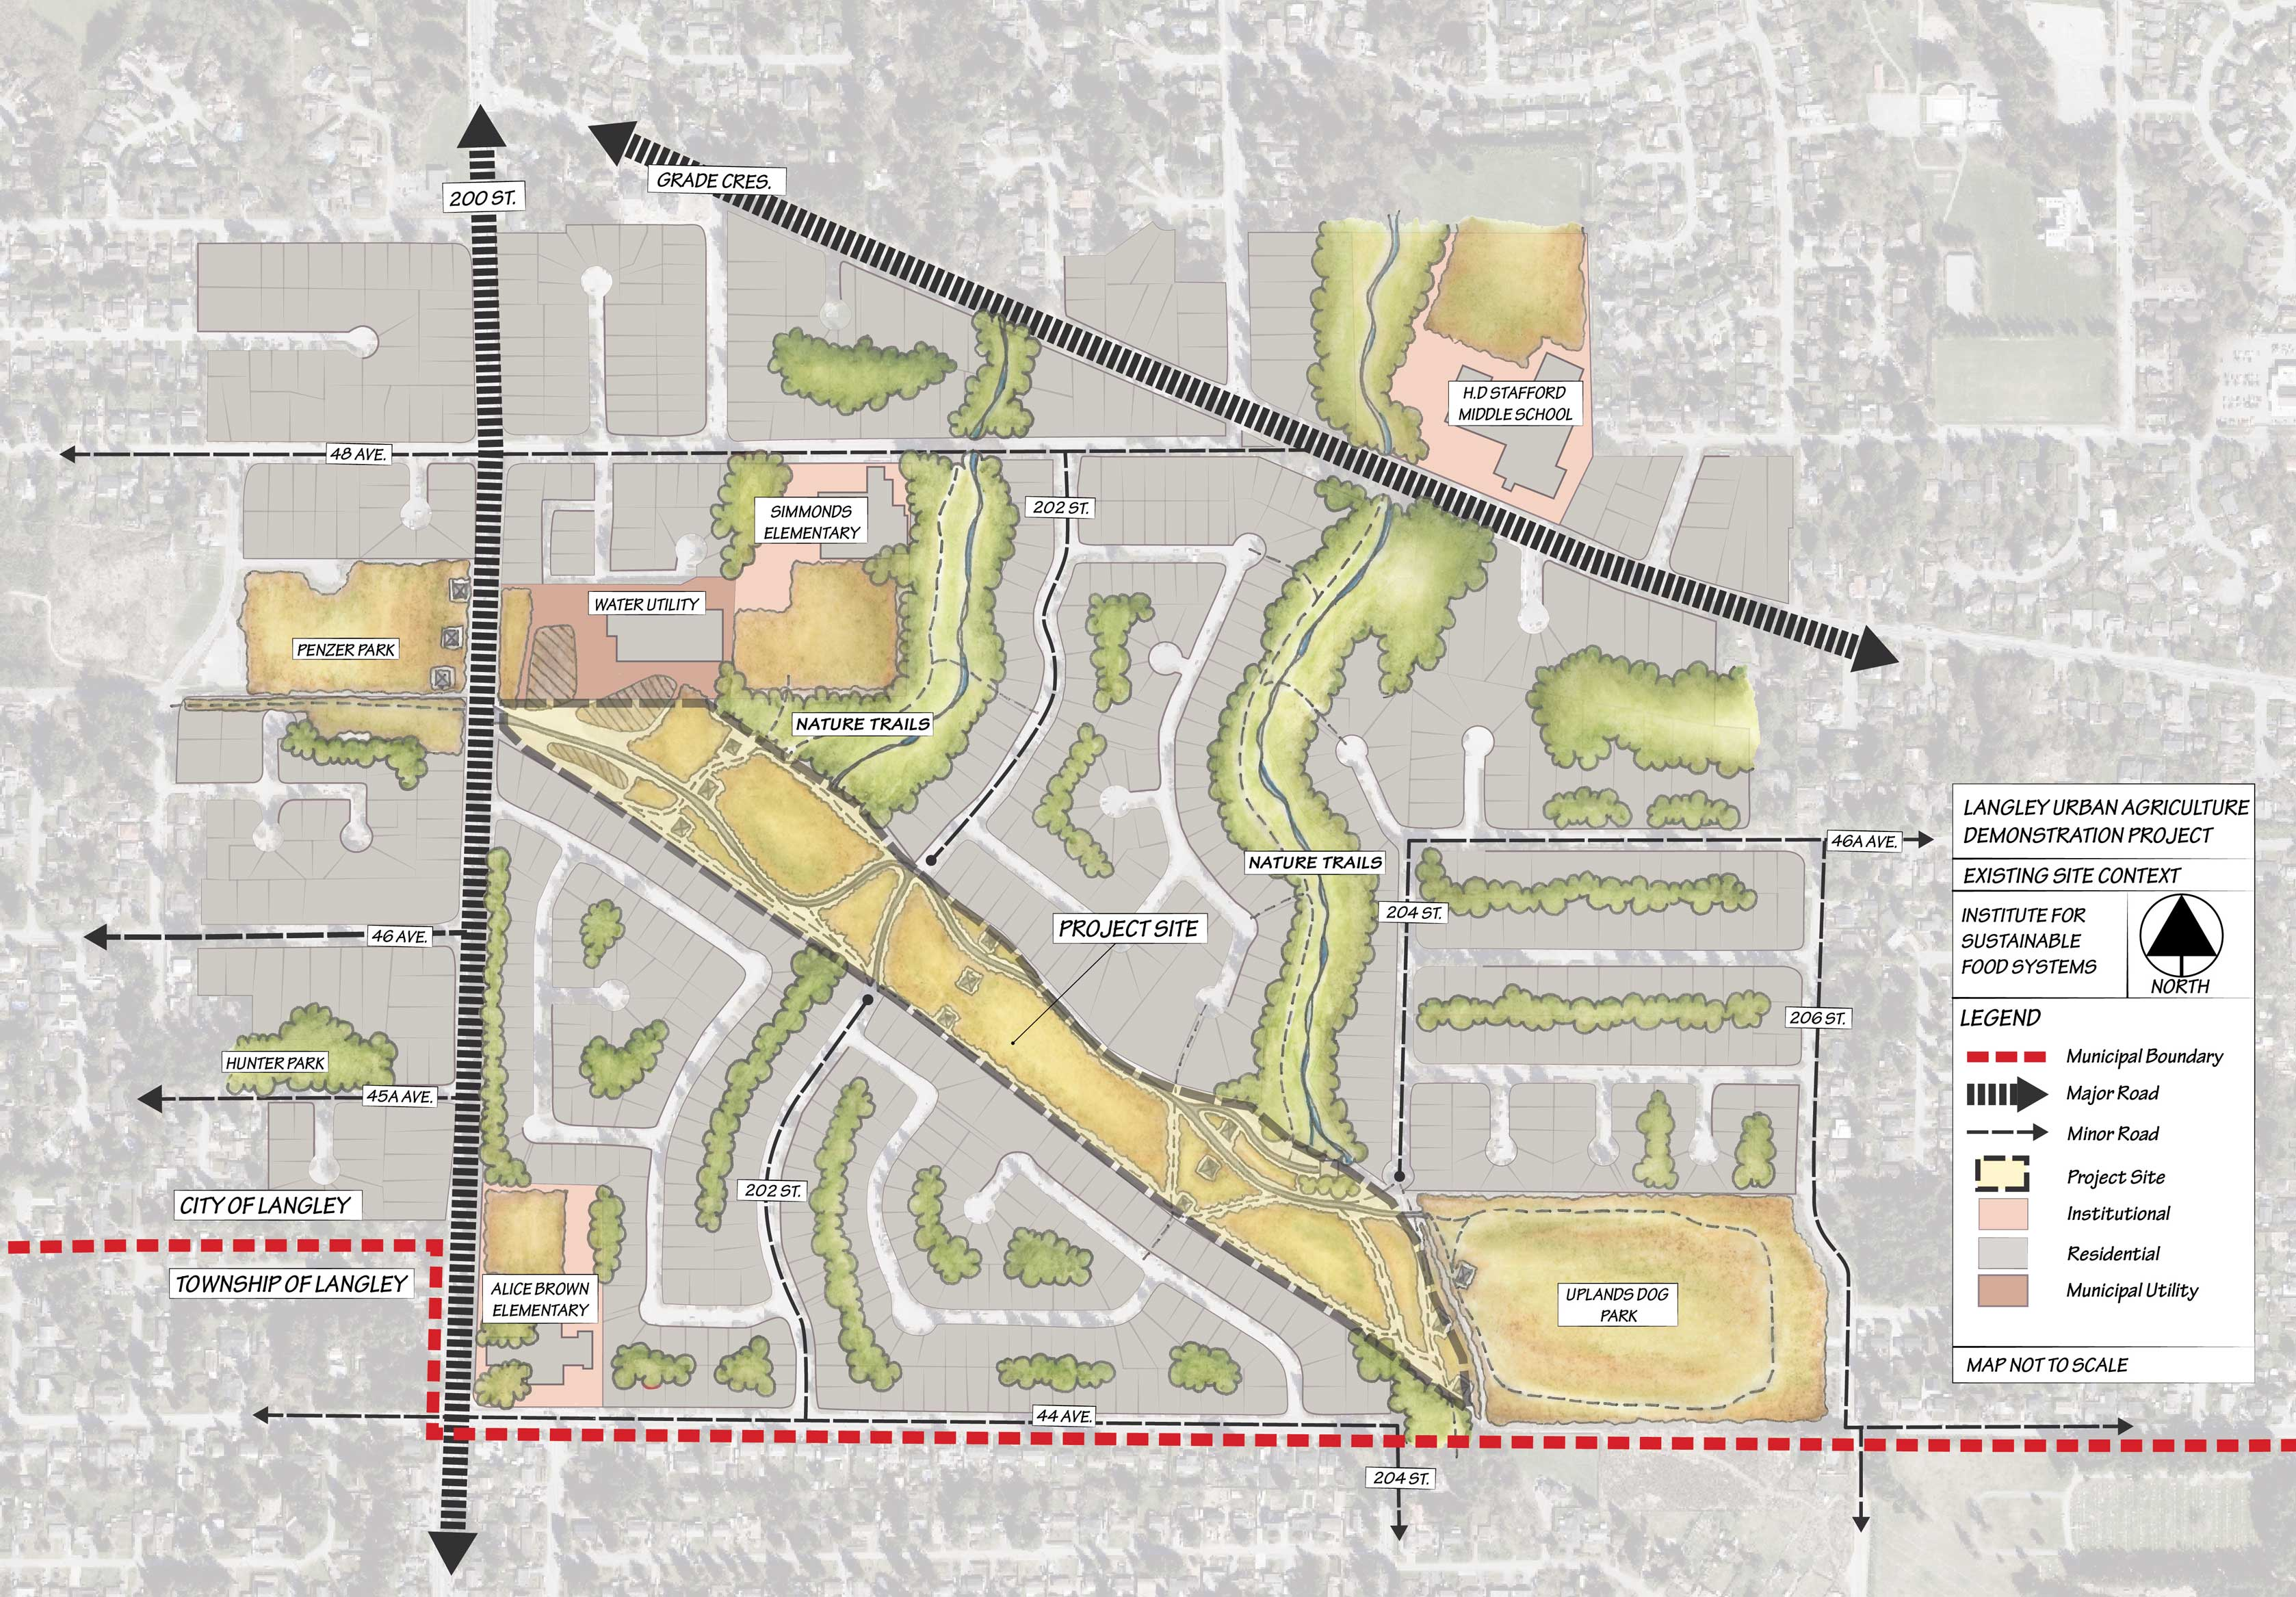 Map of Langley Project Site